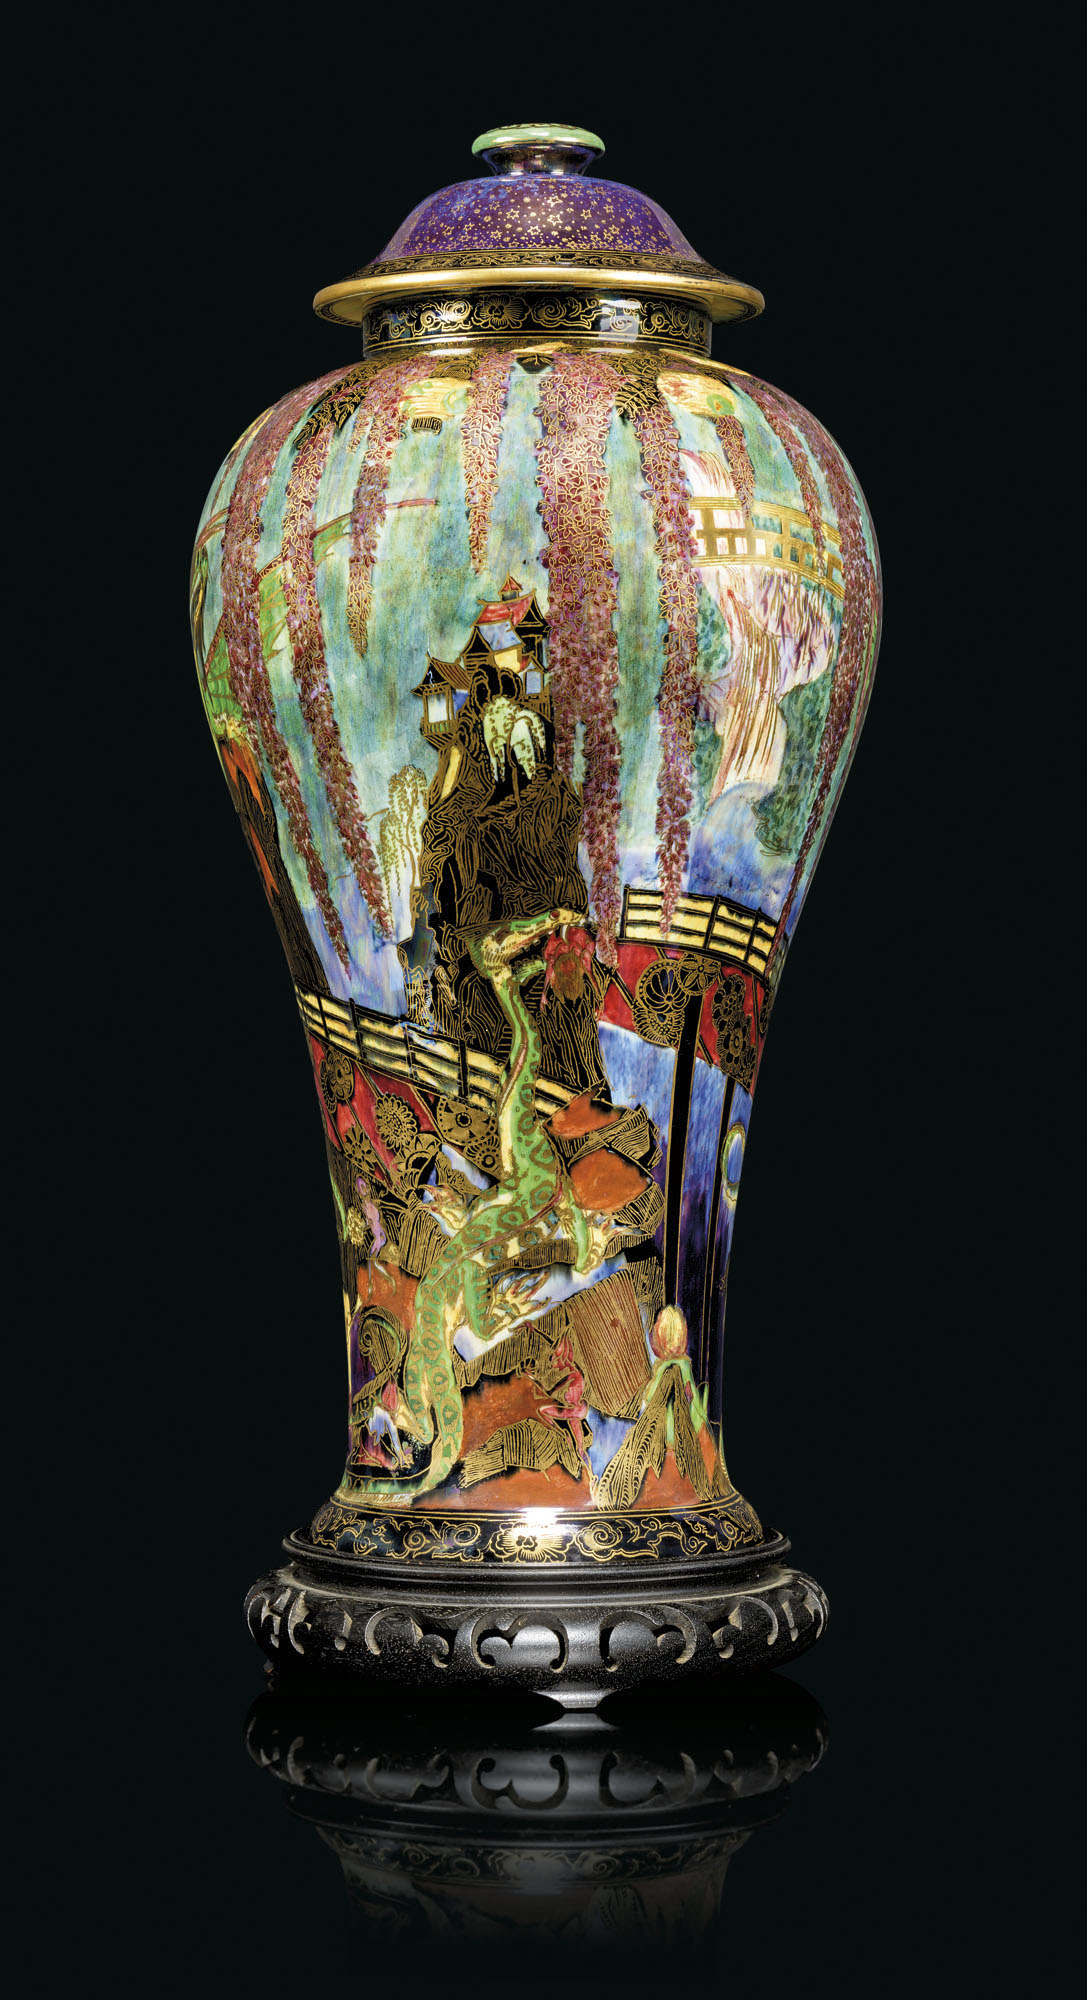 A large Wedgwood Fairyland Lustre 'Temple on a Rock' vase and cover, circa 1925. 20¼ in (51.5 cm) high overall. Estimate £15,000-20,000. Offered in The Collector Live on 19 May 2021 at Christie's in London